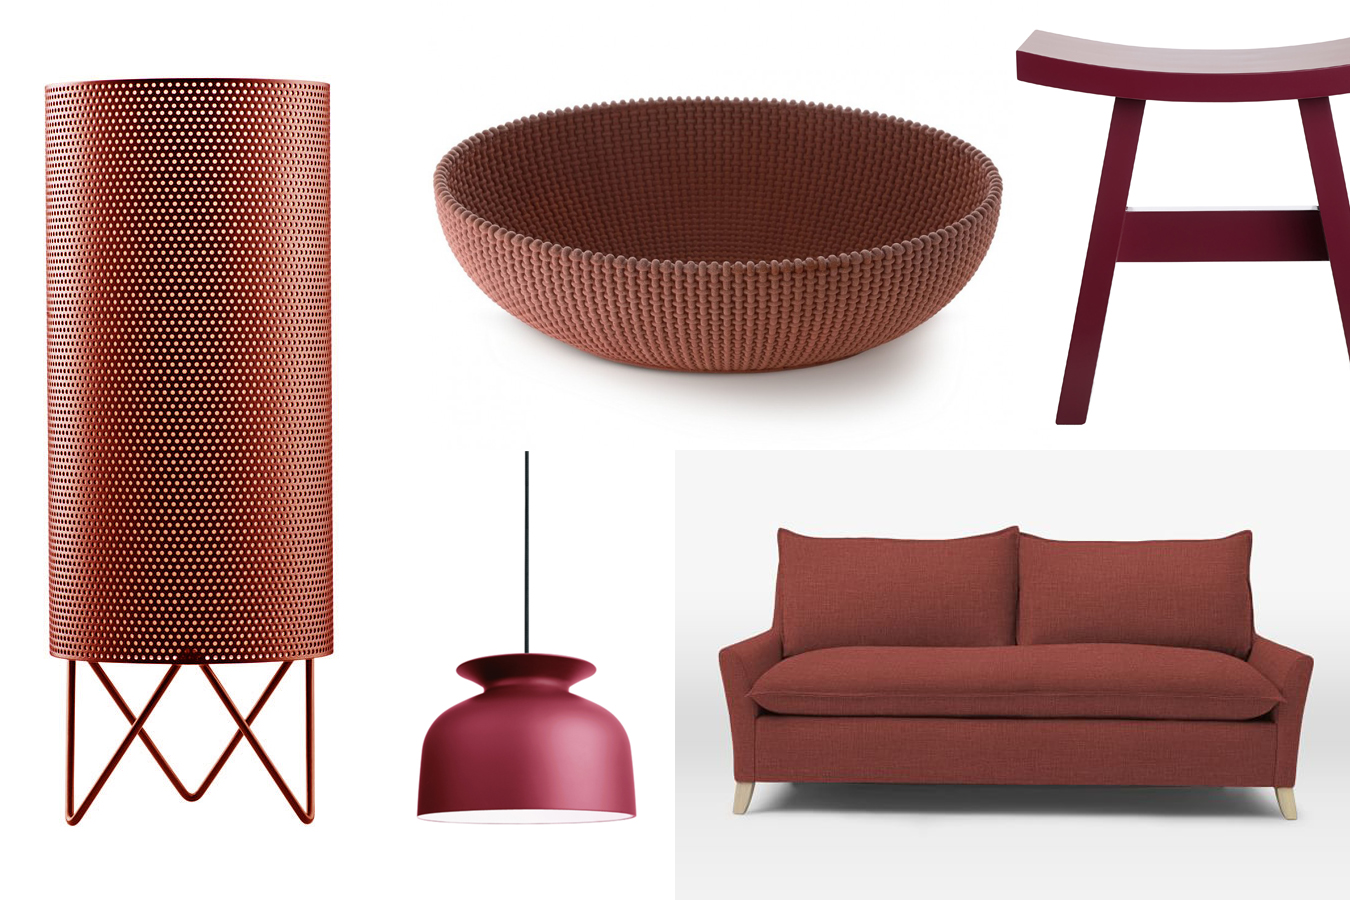 Pantone Marsala color of the year